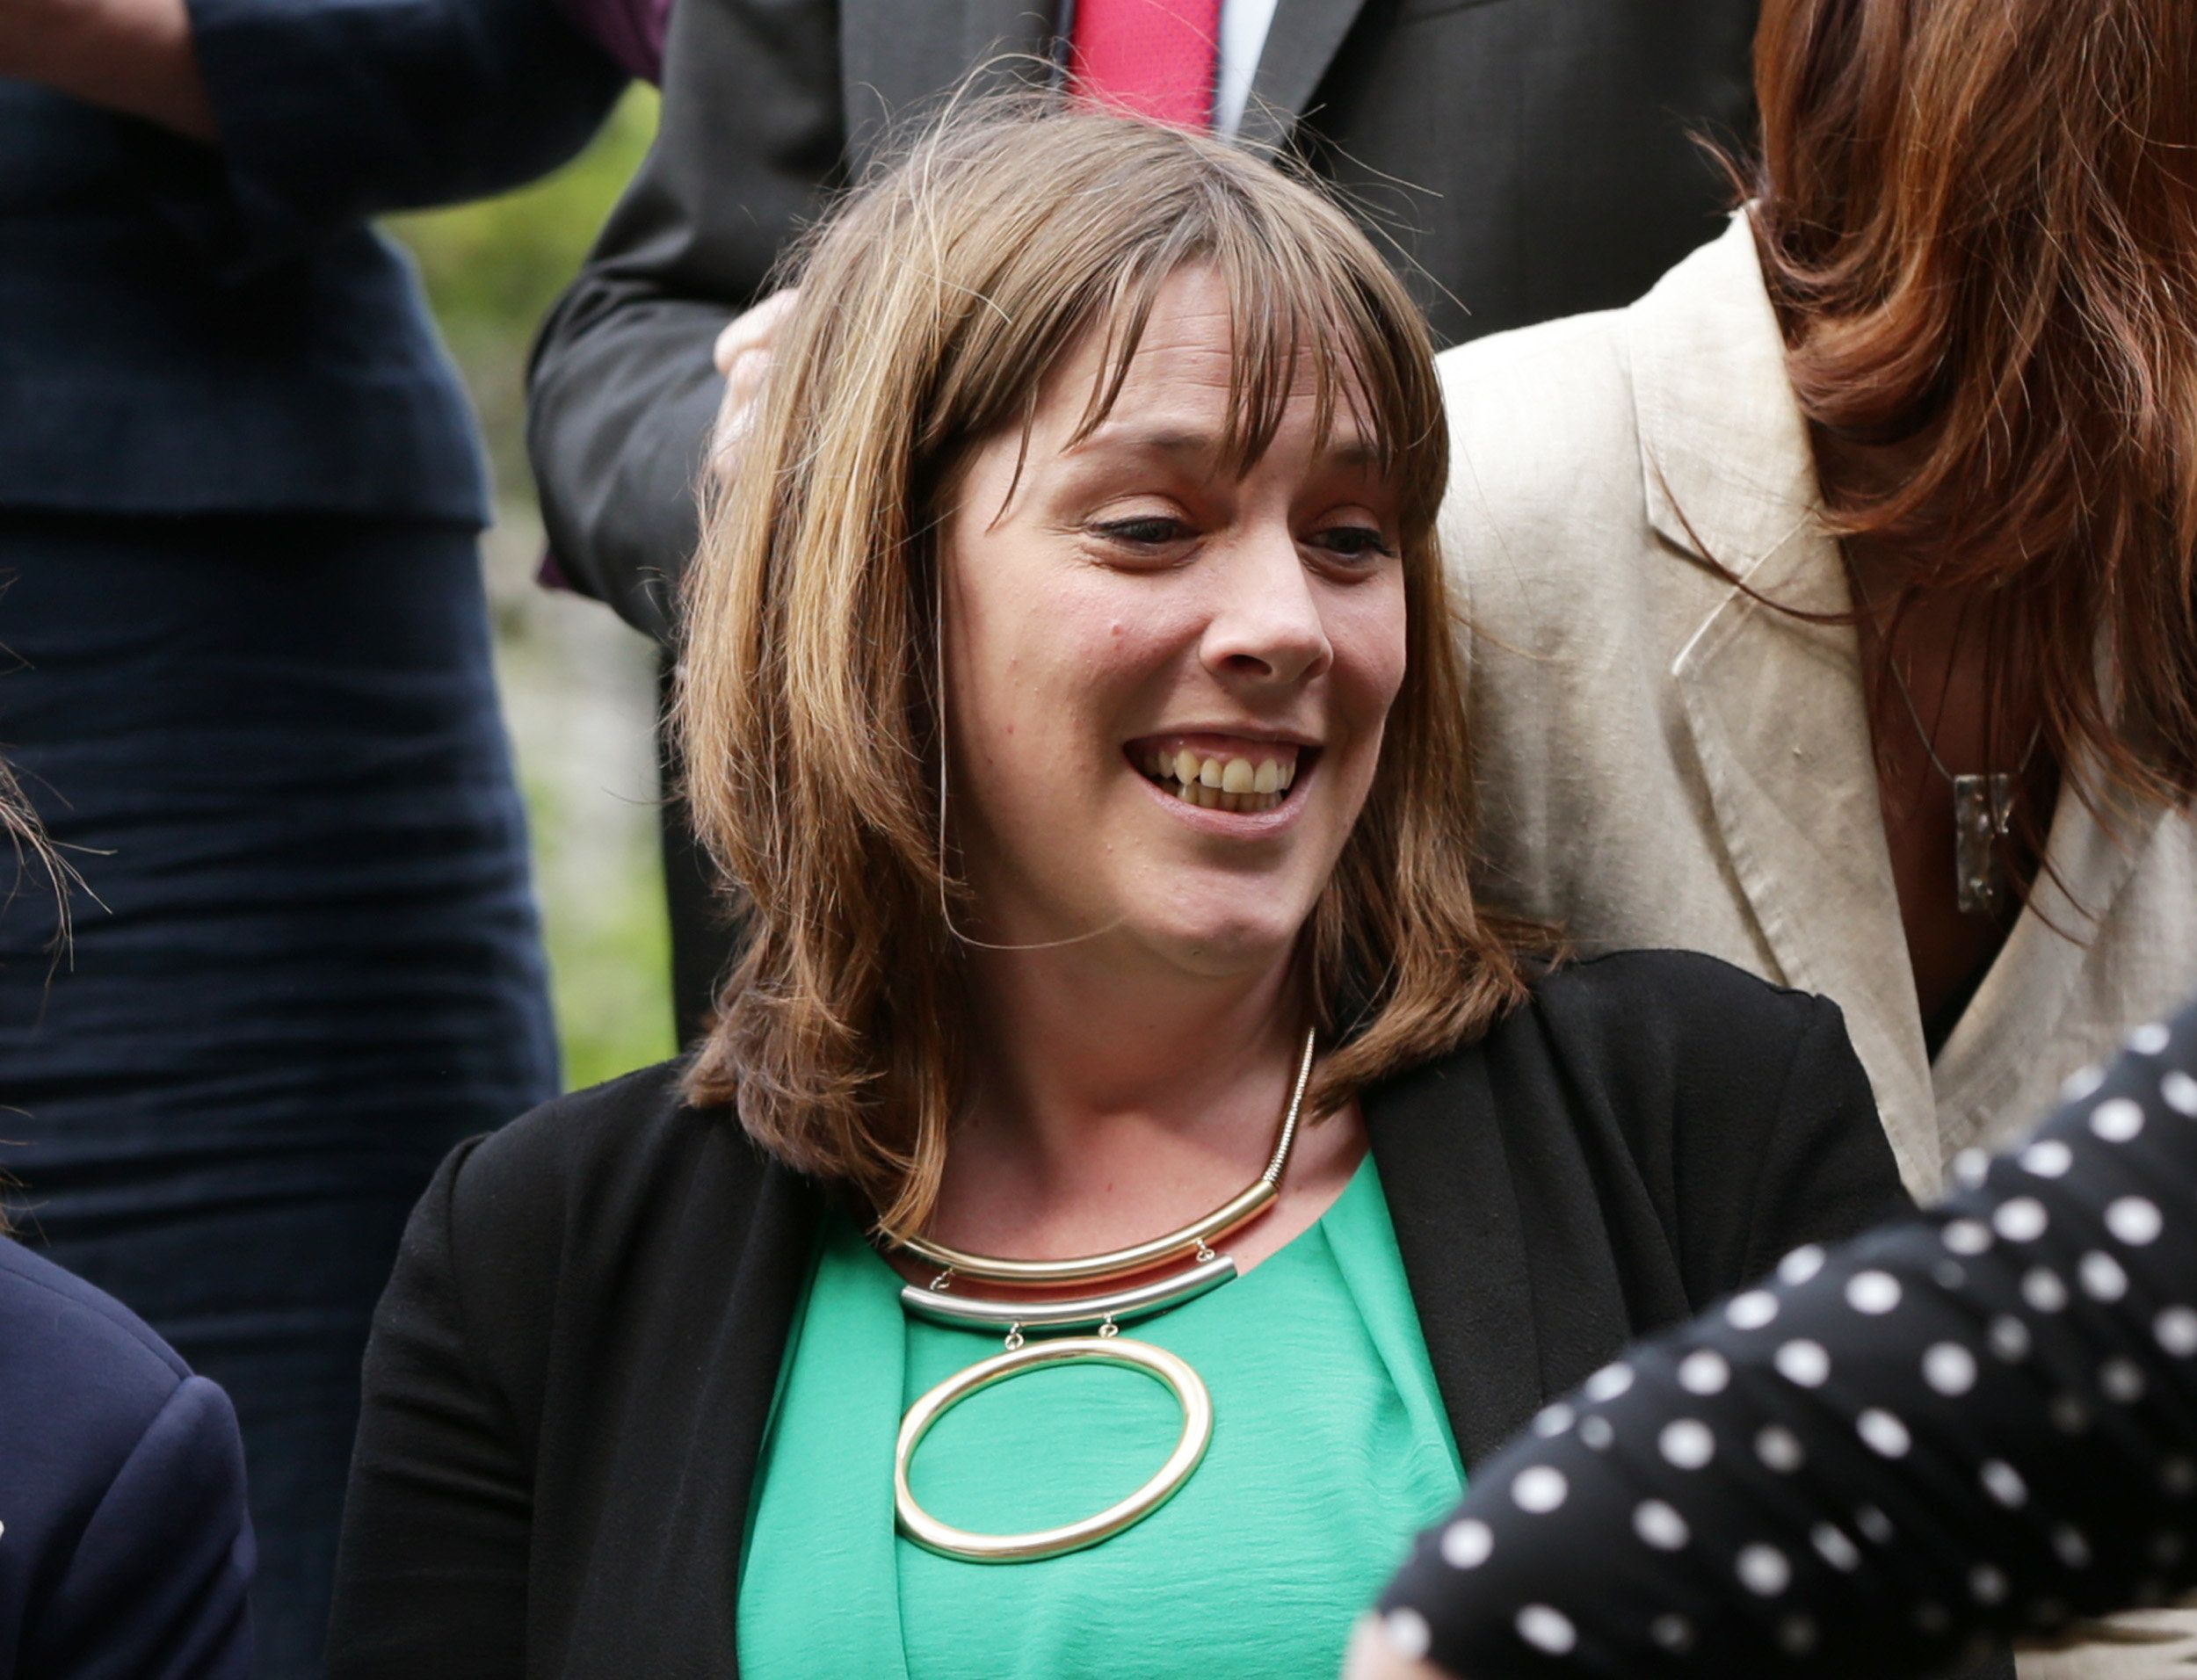 Jess Phillips said the battle to secure equal pay has been 'lost' for women of her